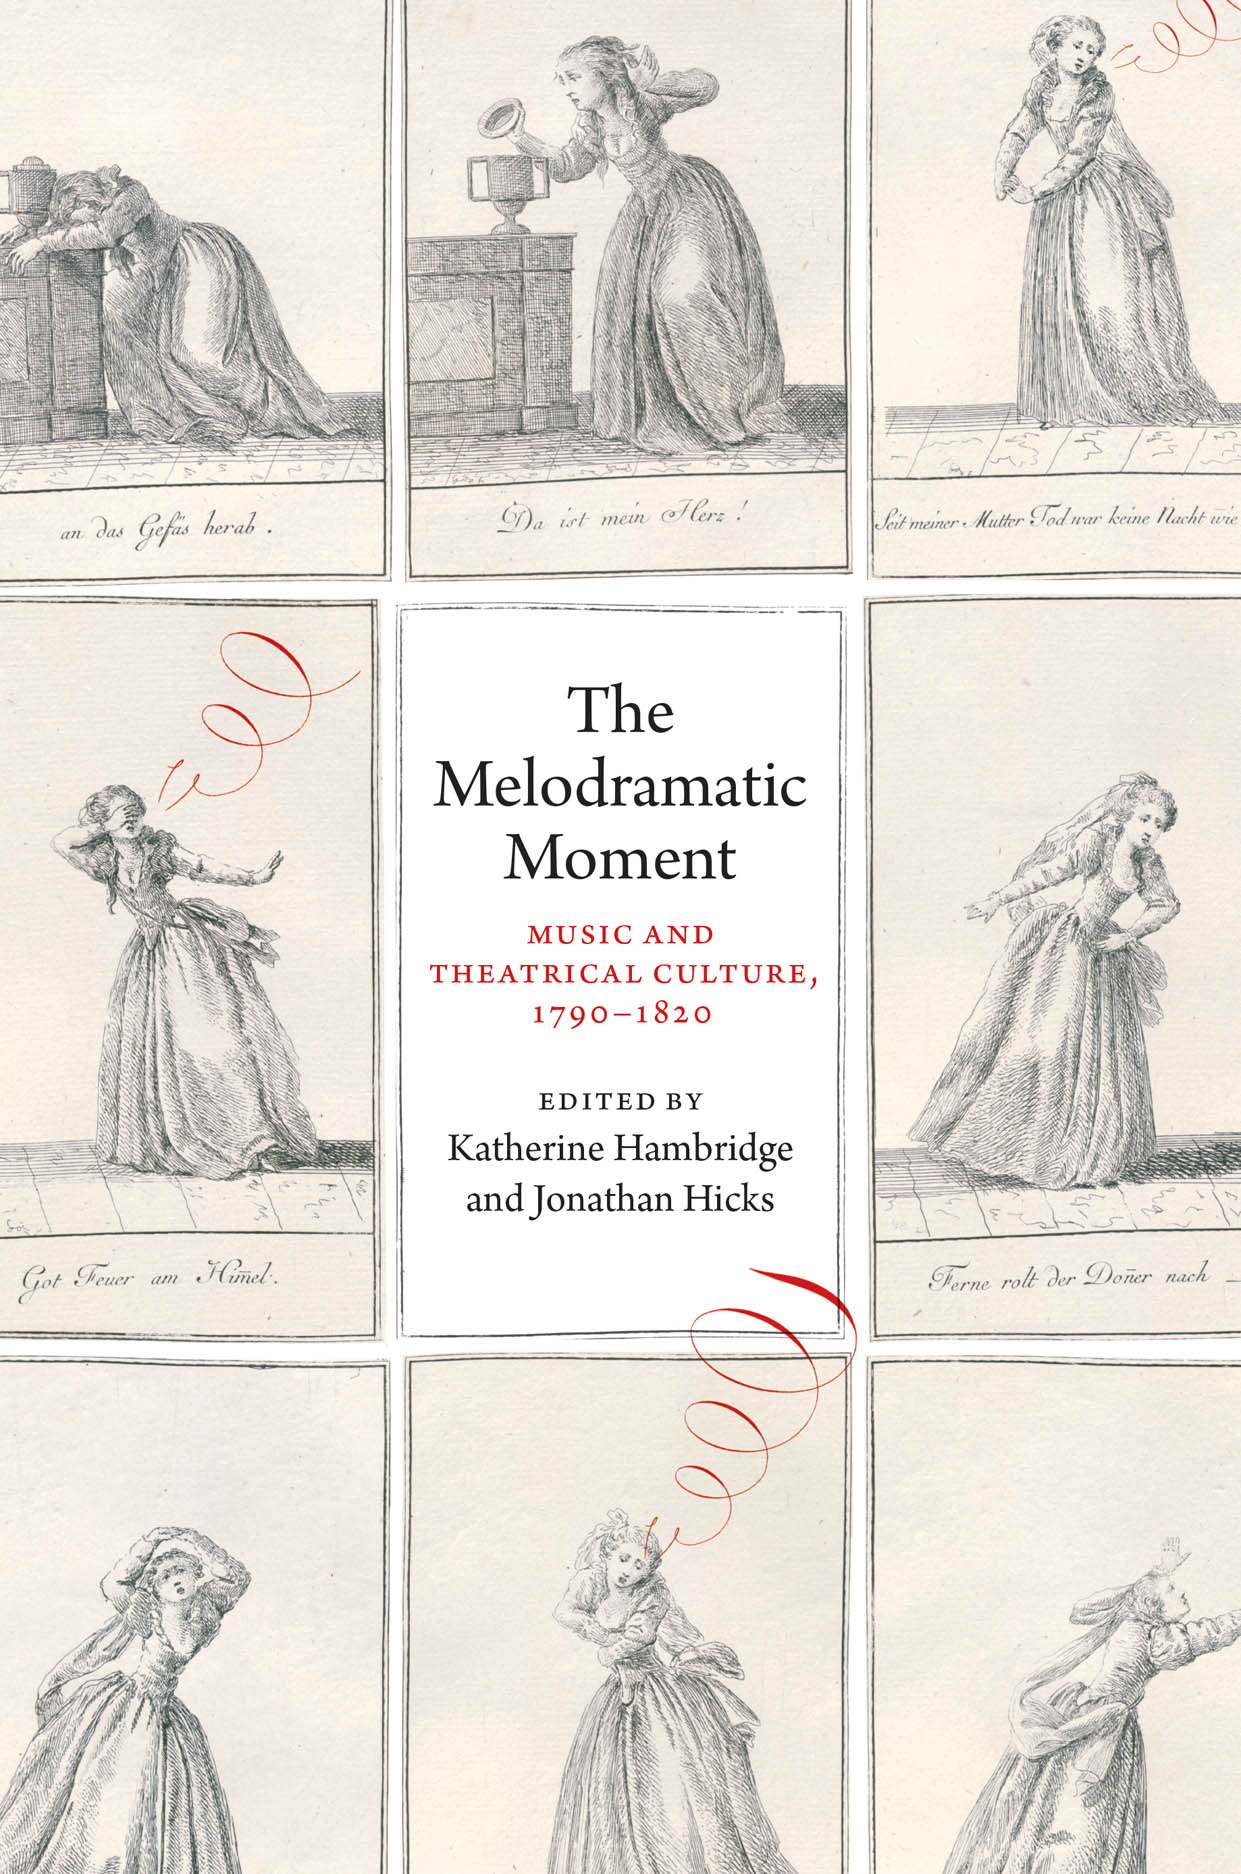 The Melodramatic Moment: Music and Theatrical Culture, 1790–1820